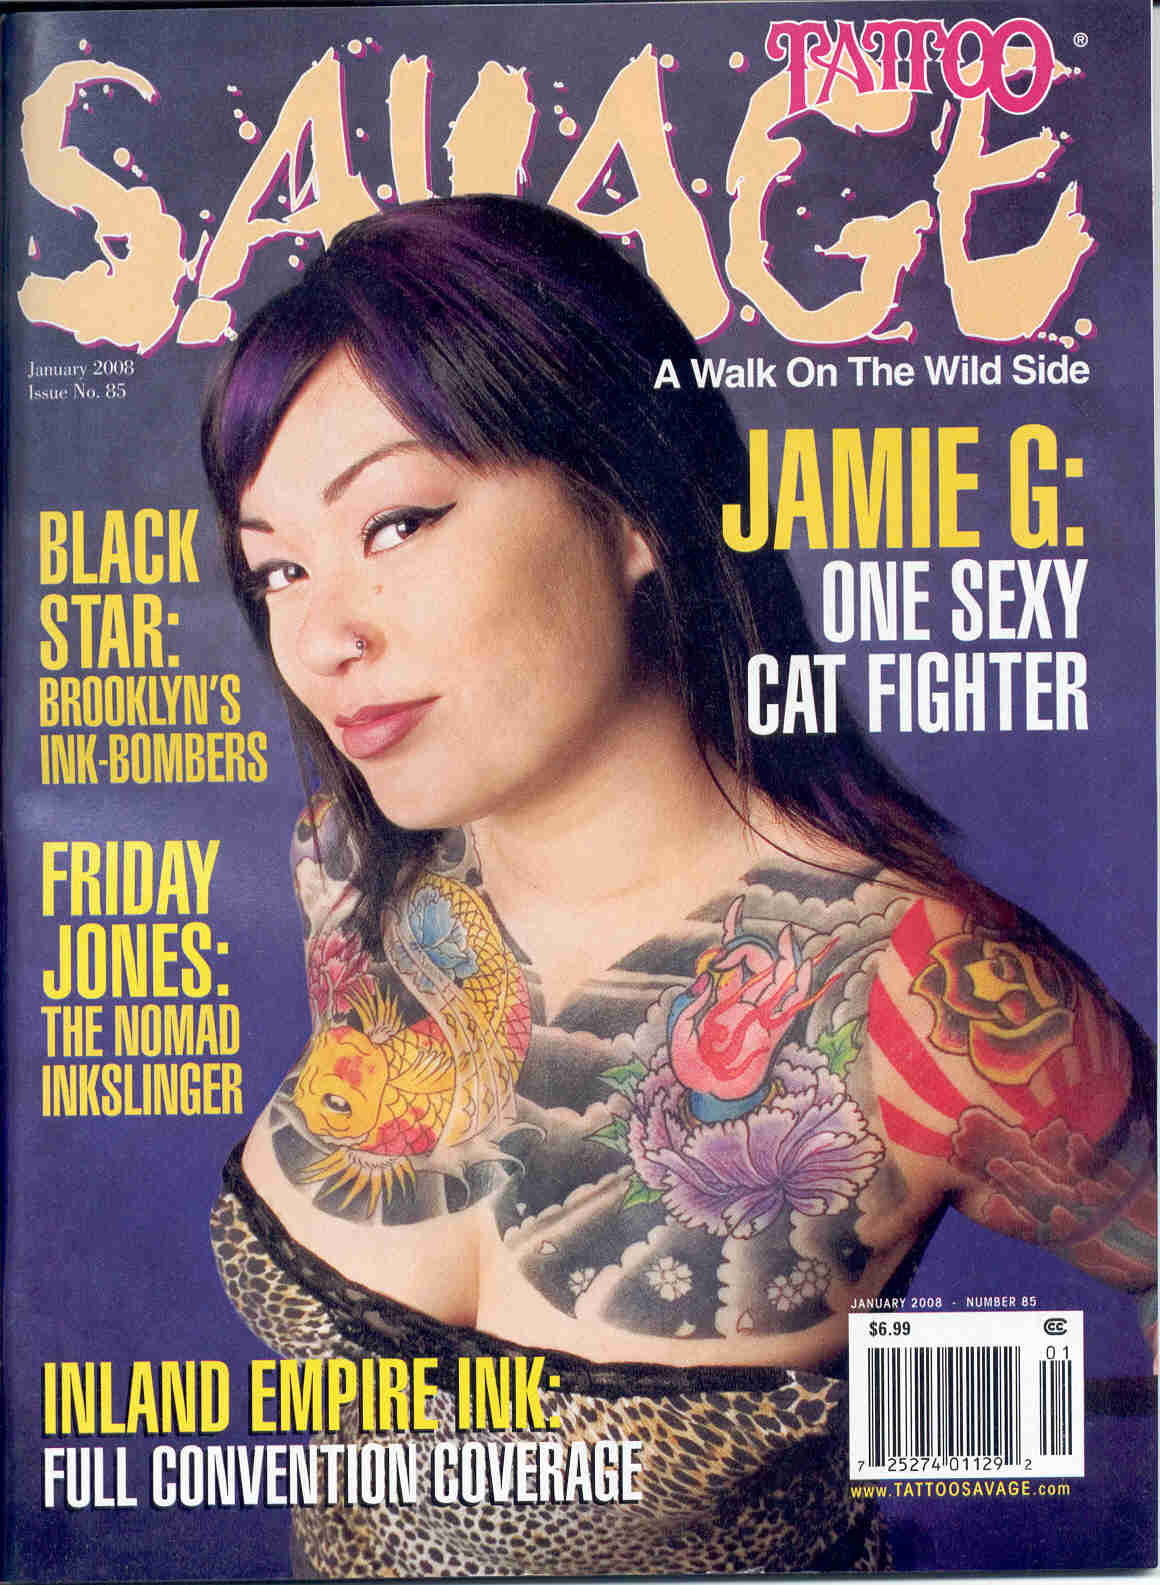 SAVAGE MAG JANUARY 2008 cover